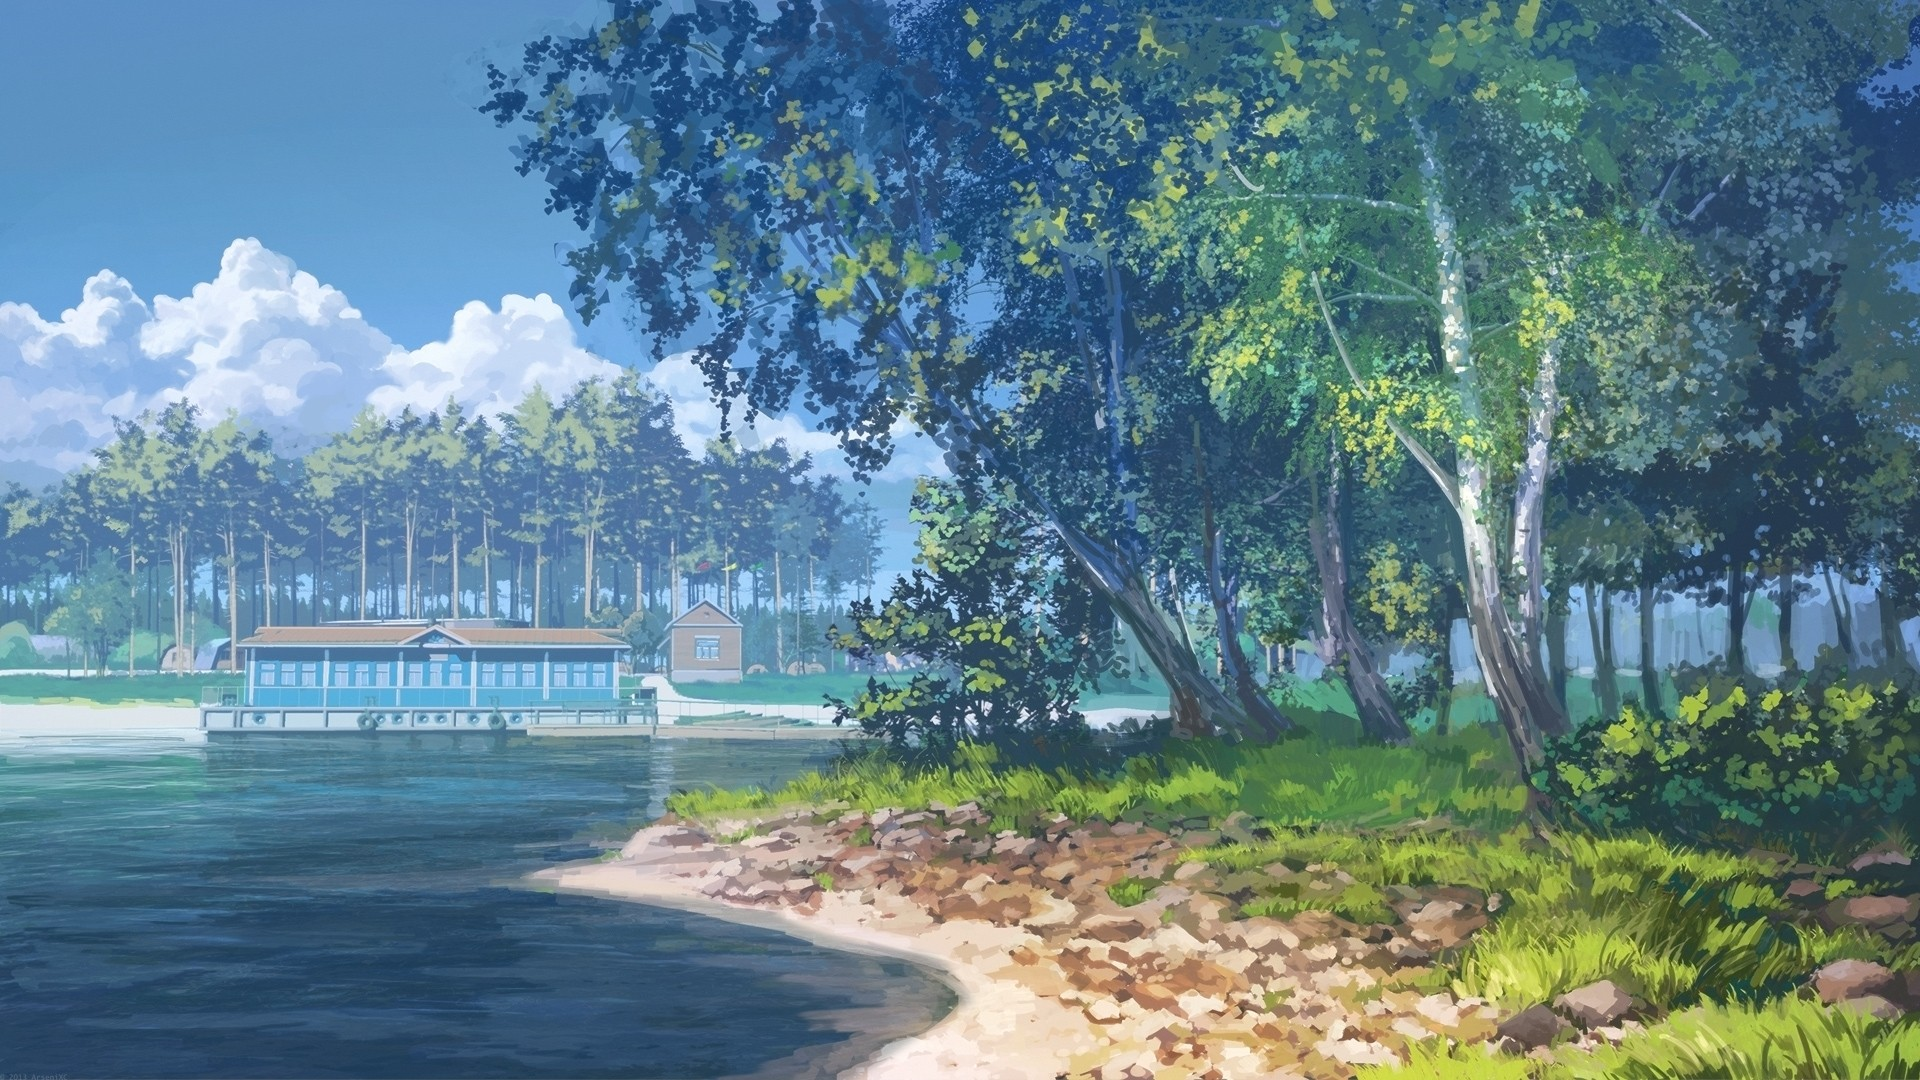 Anime Scenery Free Wallpaper and Background